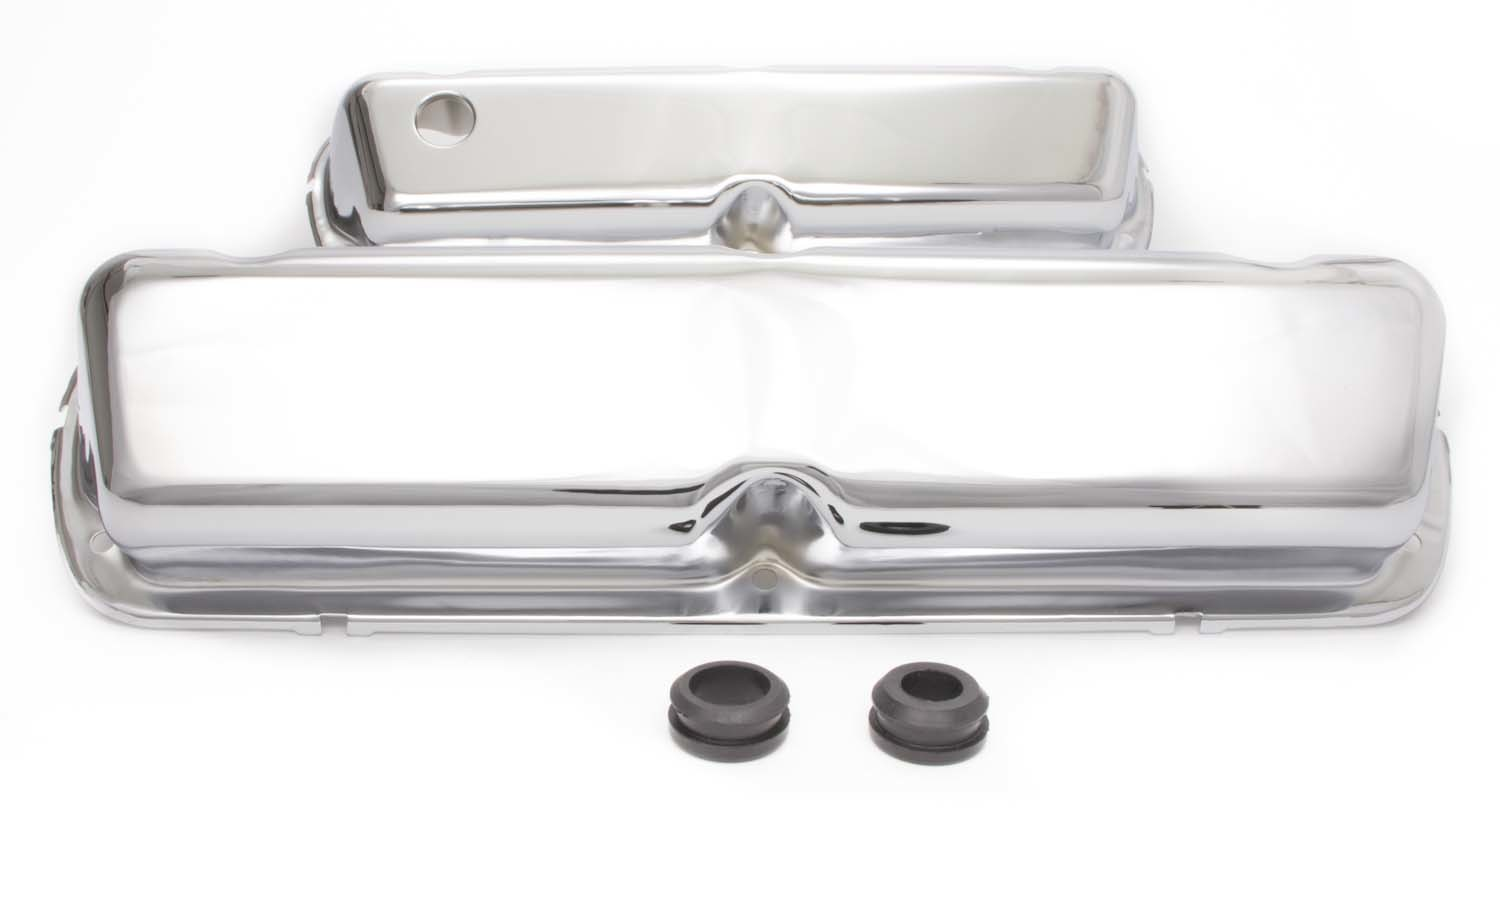 Racing Power Company R9239 Valve Cover, Tall, 3-11/16 in Height, Breather Hole, Grommets Included, Steel, Chrome, Small Block Ford, Pair